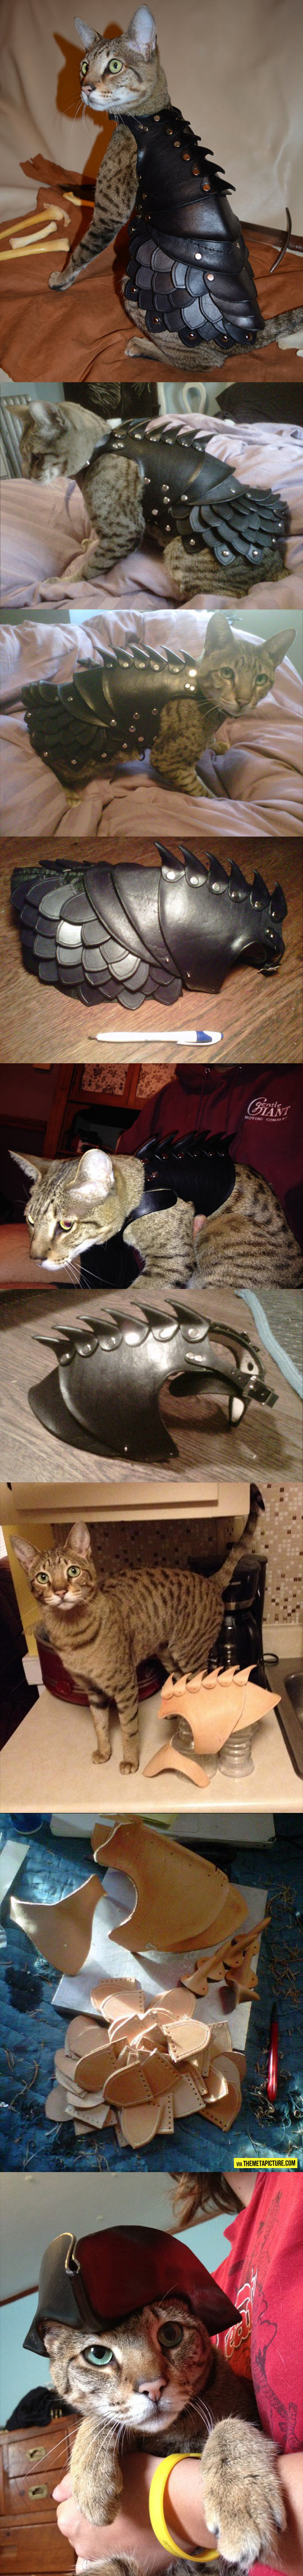 cool-cat-outfit-costume-leather-armor